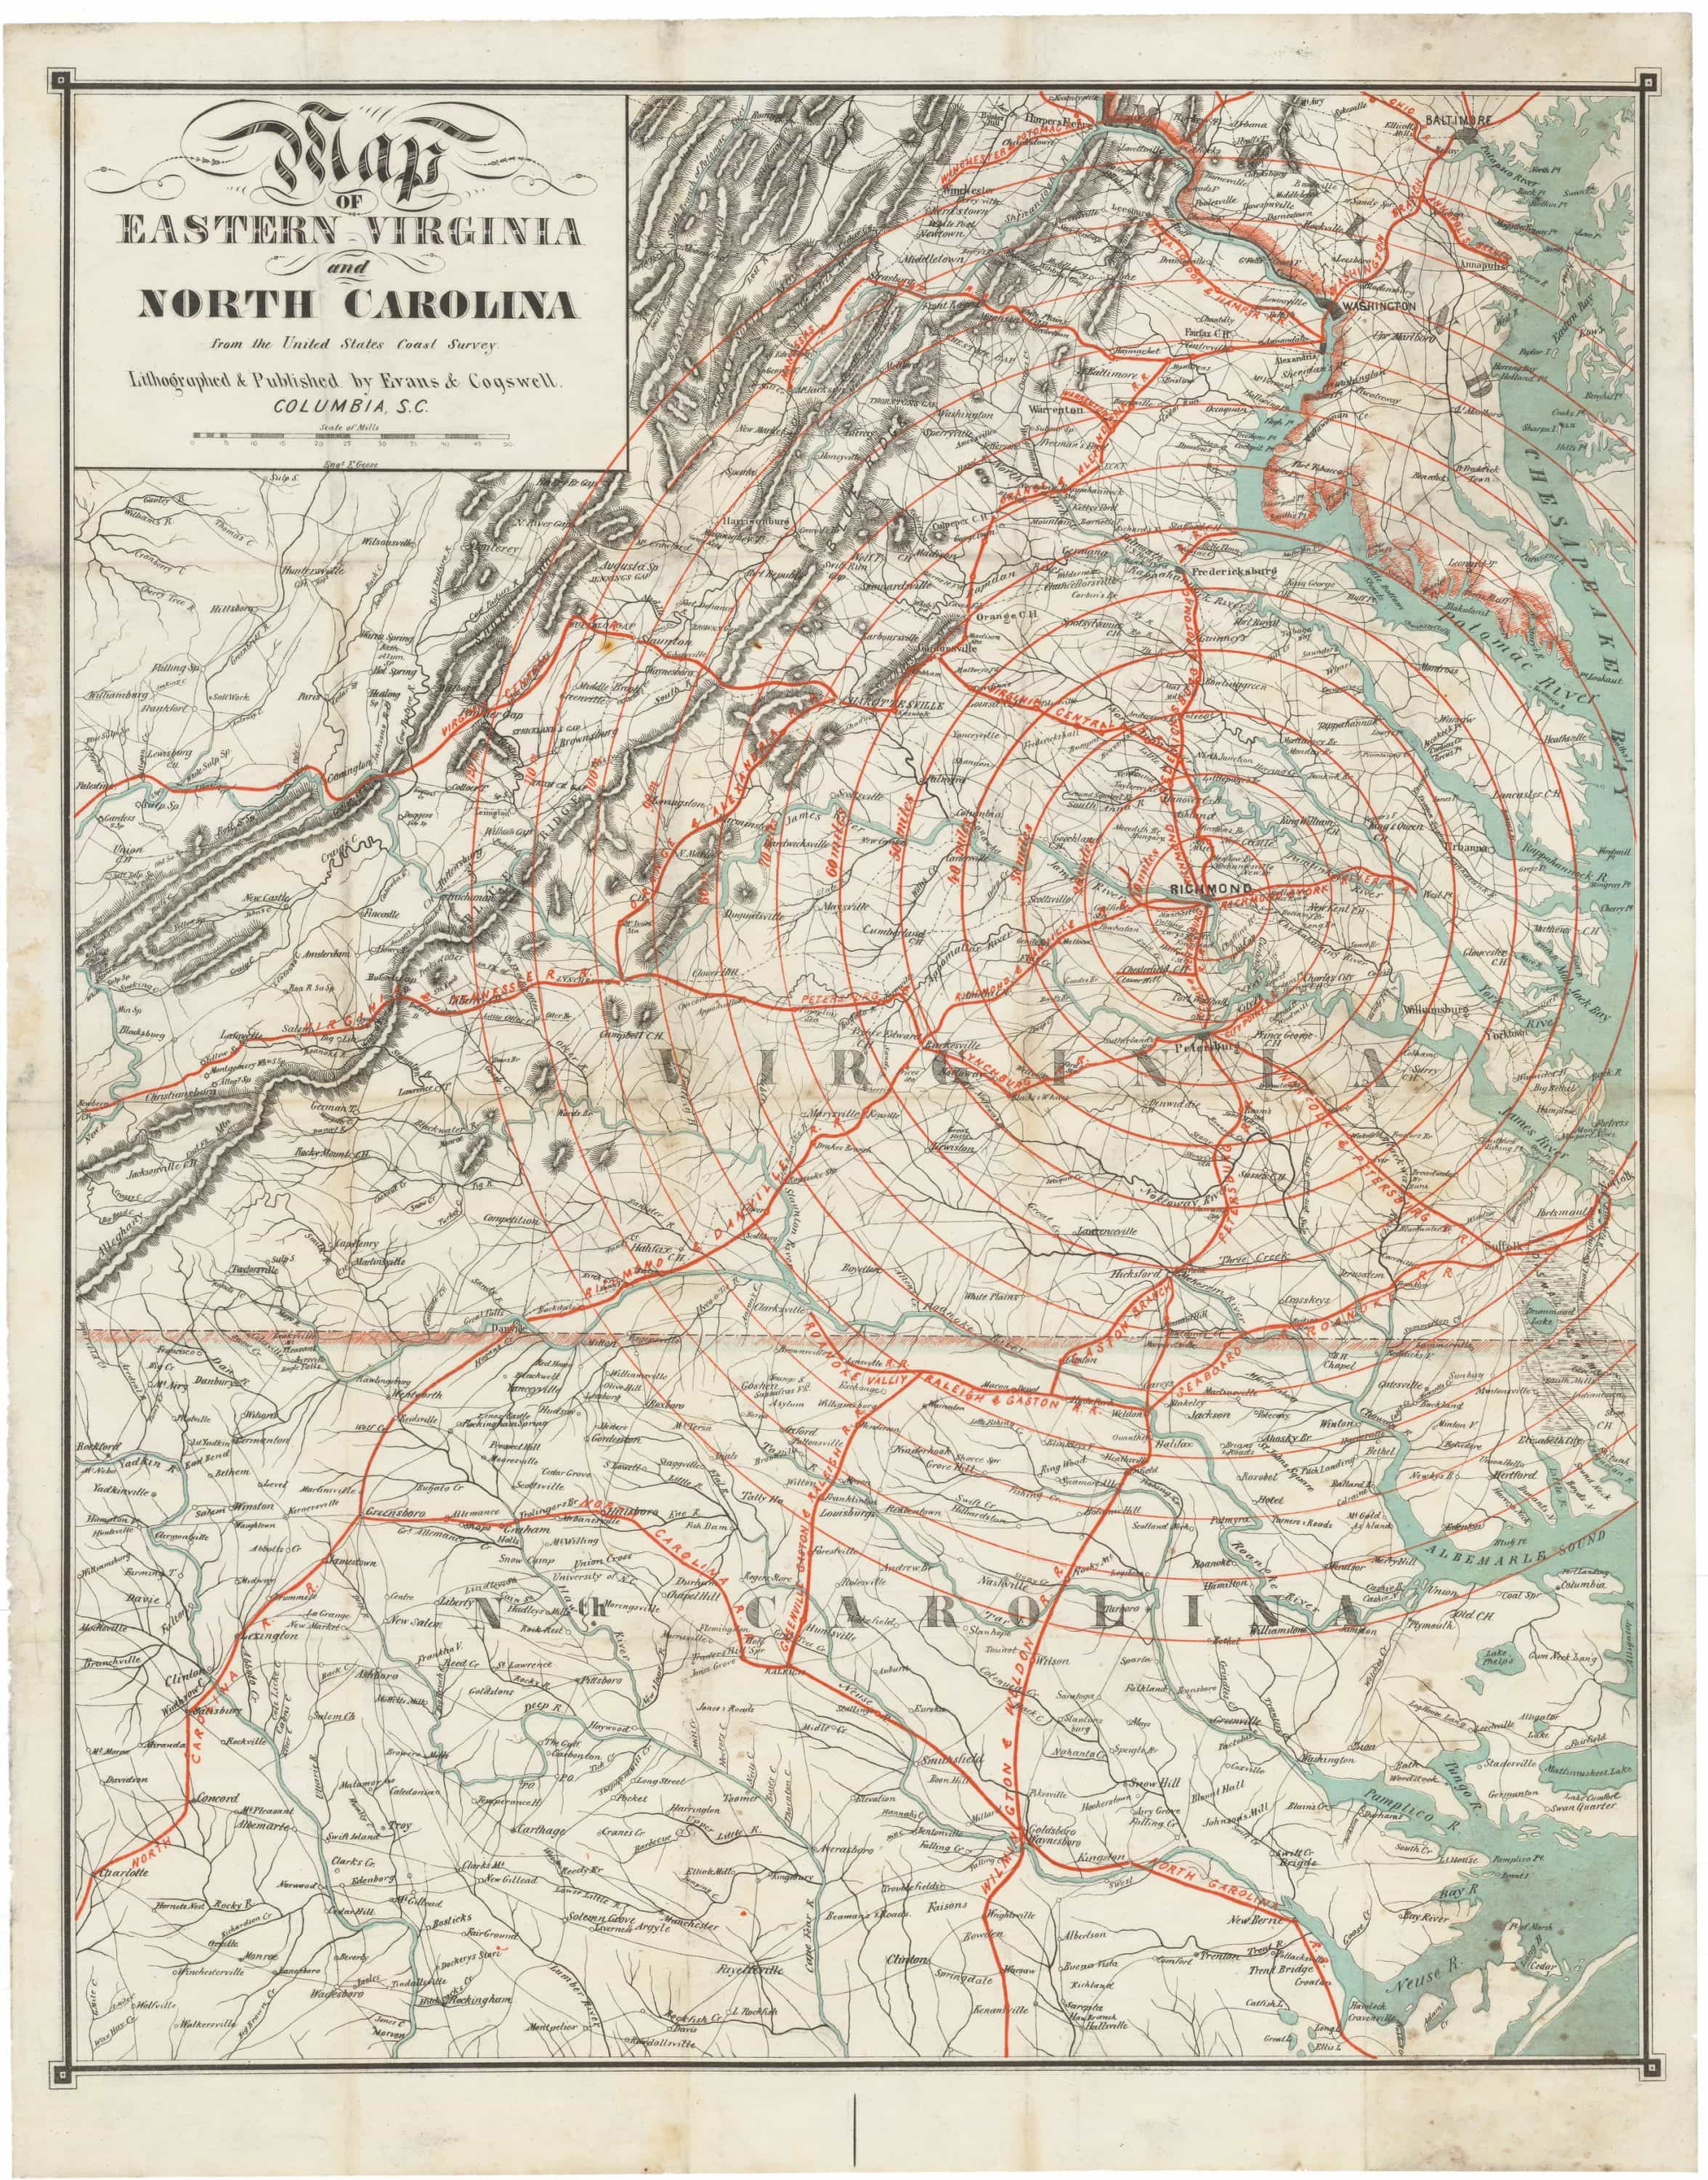 Rare Confederate-imprint map by Evans and Cogswell - Rare & Antique Maps